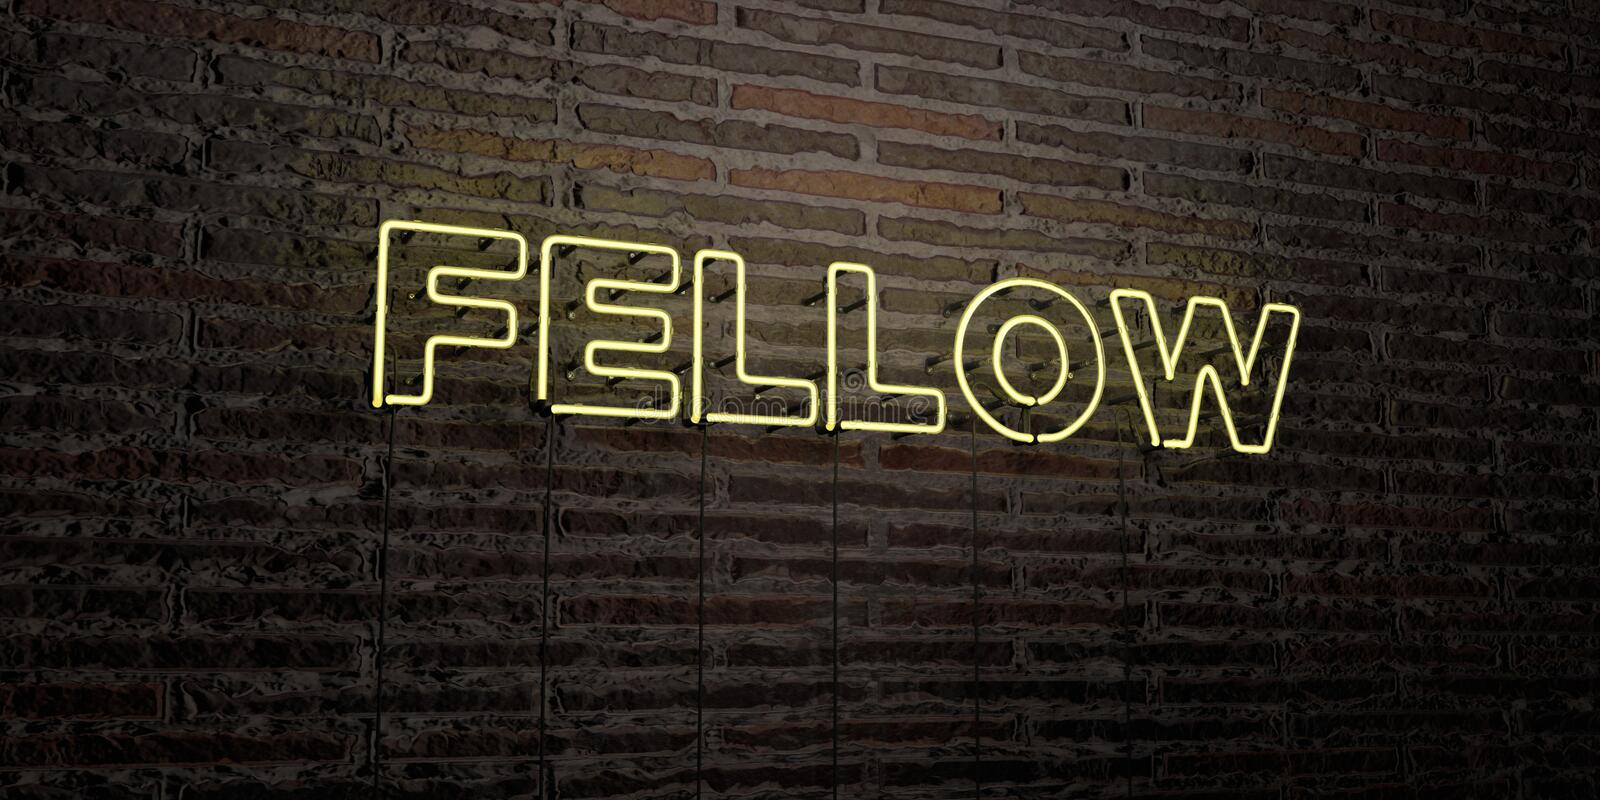 FELLOW -Realistic Neon Sign on Brick Wall background - 3D rendered royalty free stock image. Can be used for online banner ads and direct mailers vector illustration